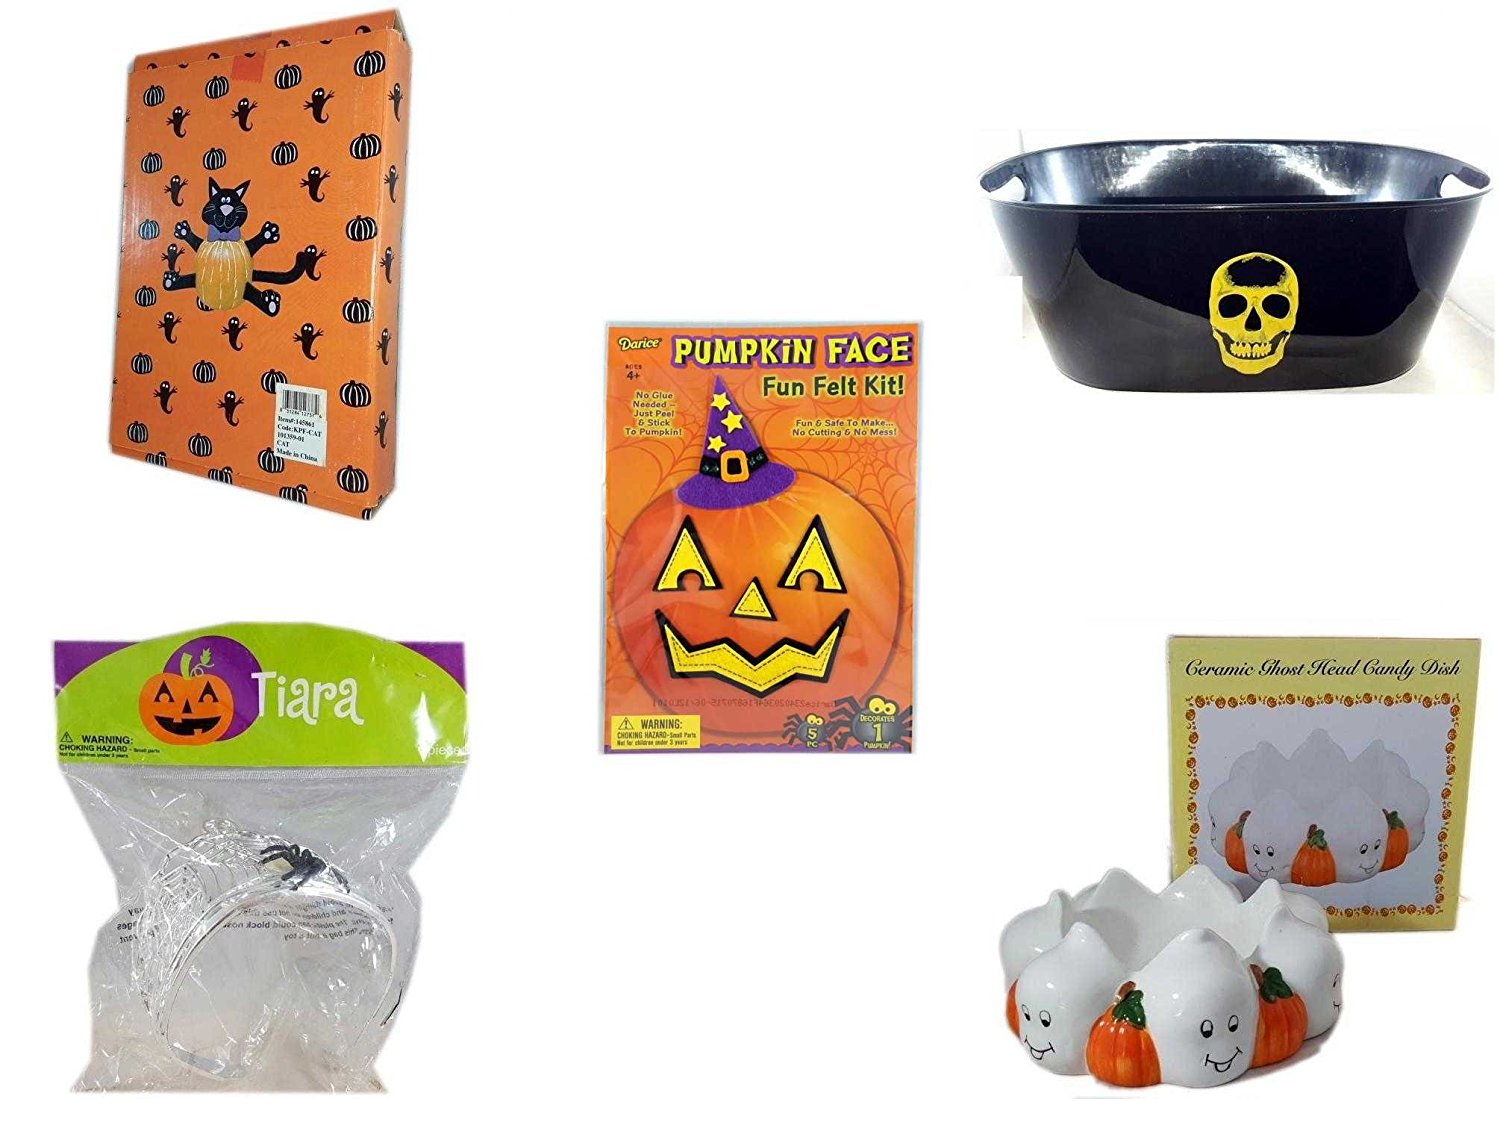 Halloween Fun Gift Bundle [5 piece] - Halloween Cat Pumpkin Push In 5 Piece Head Arms Legs - Black With Skeleton Oval Party Tub - Darice Pumpkin Face Fun Felt Kit - Witch - Halloween Spider Tiara -